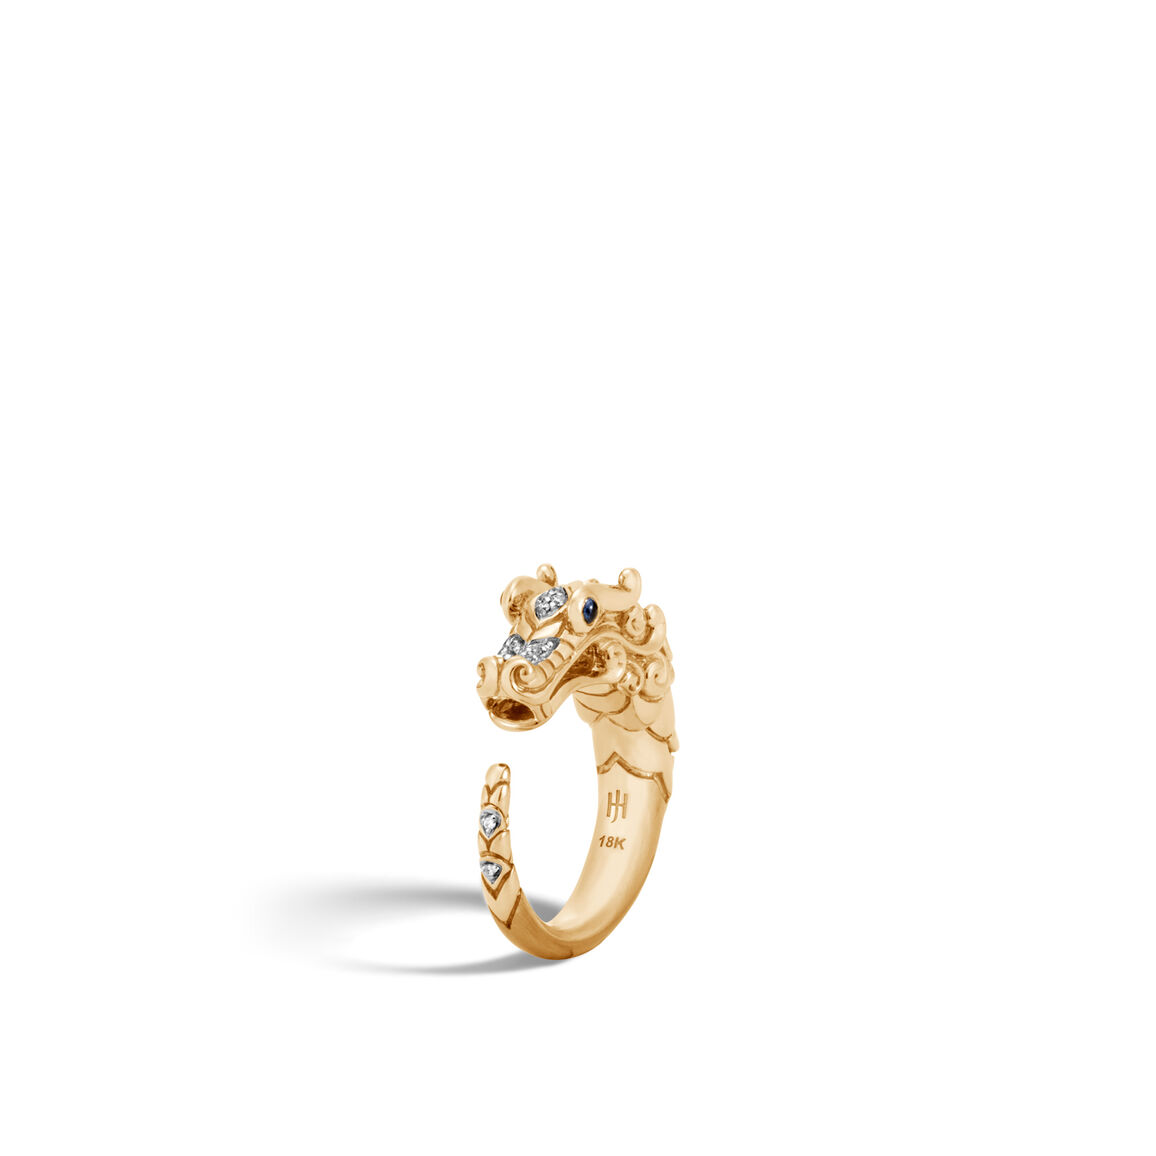 Legends Naga Ring in Brushed 18K Gold with Diamonds